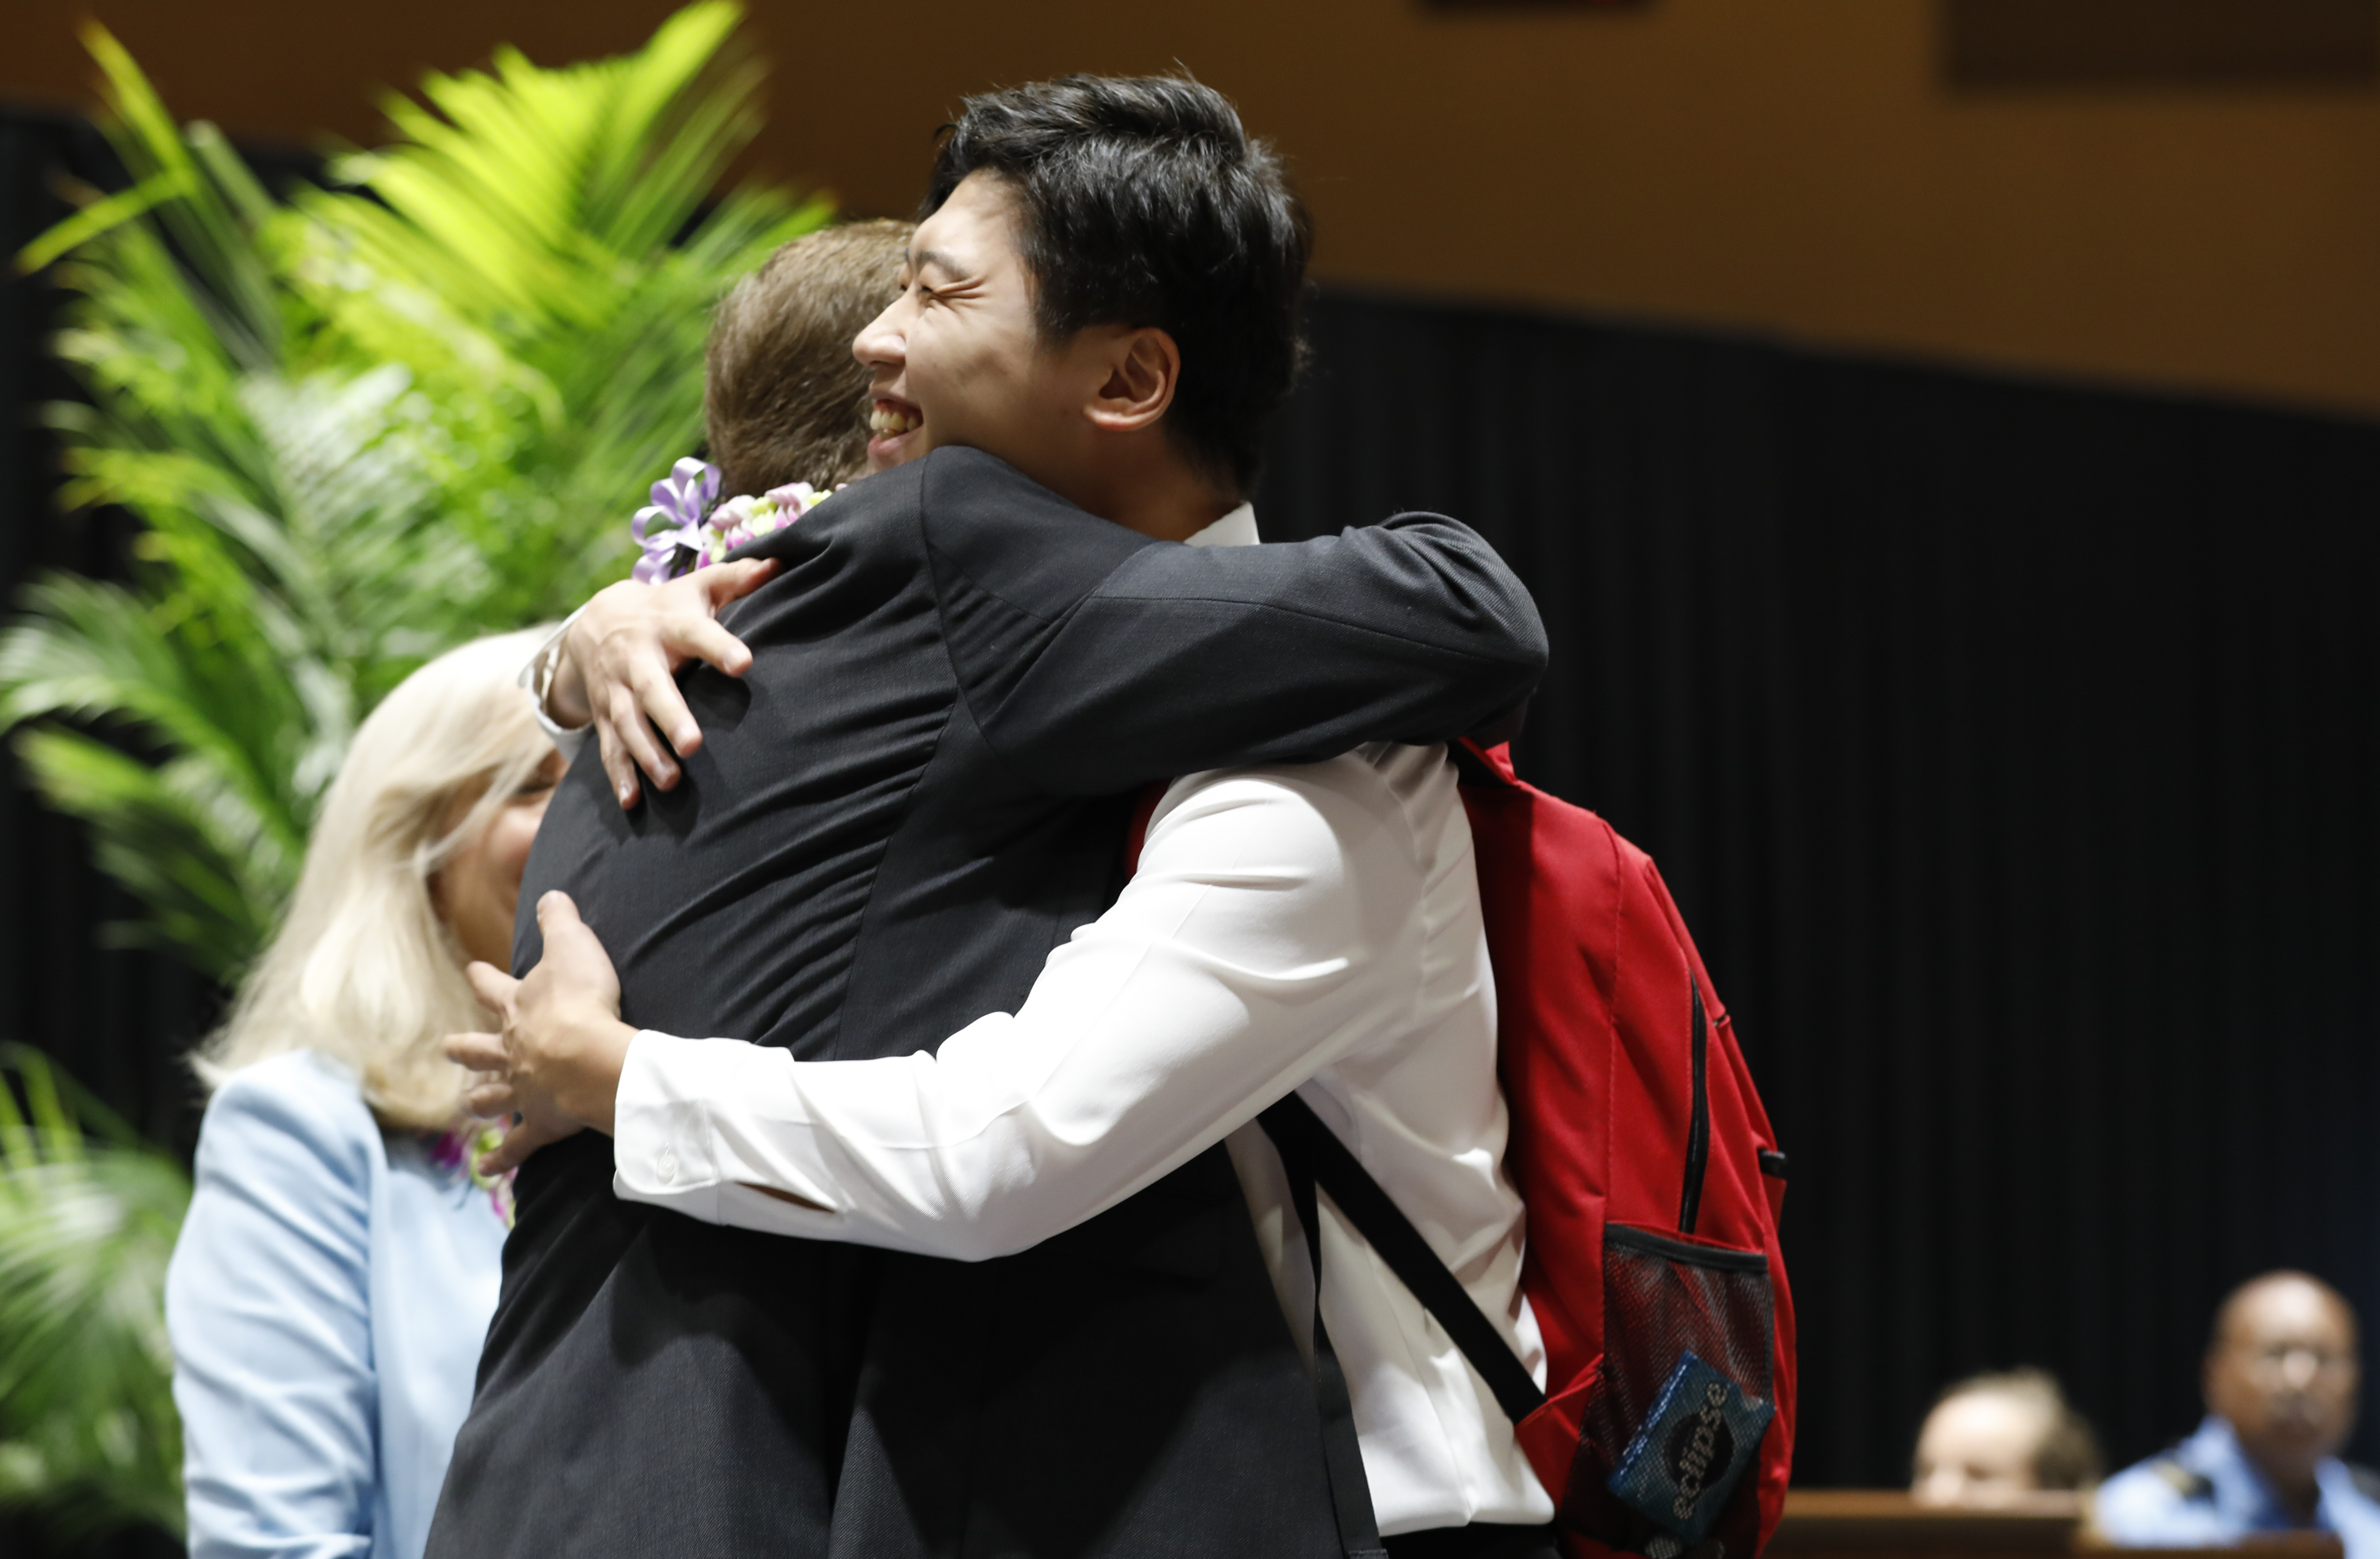 Elder L. Todd Budge embraces Gyujin Han, a BYU-Hawaii student from South Korea. Elder Budge gave the devotional address at BYU-Hawaii on Tuesday, Sept. 24, 2019.